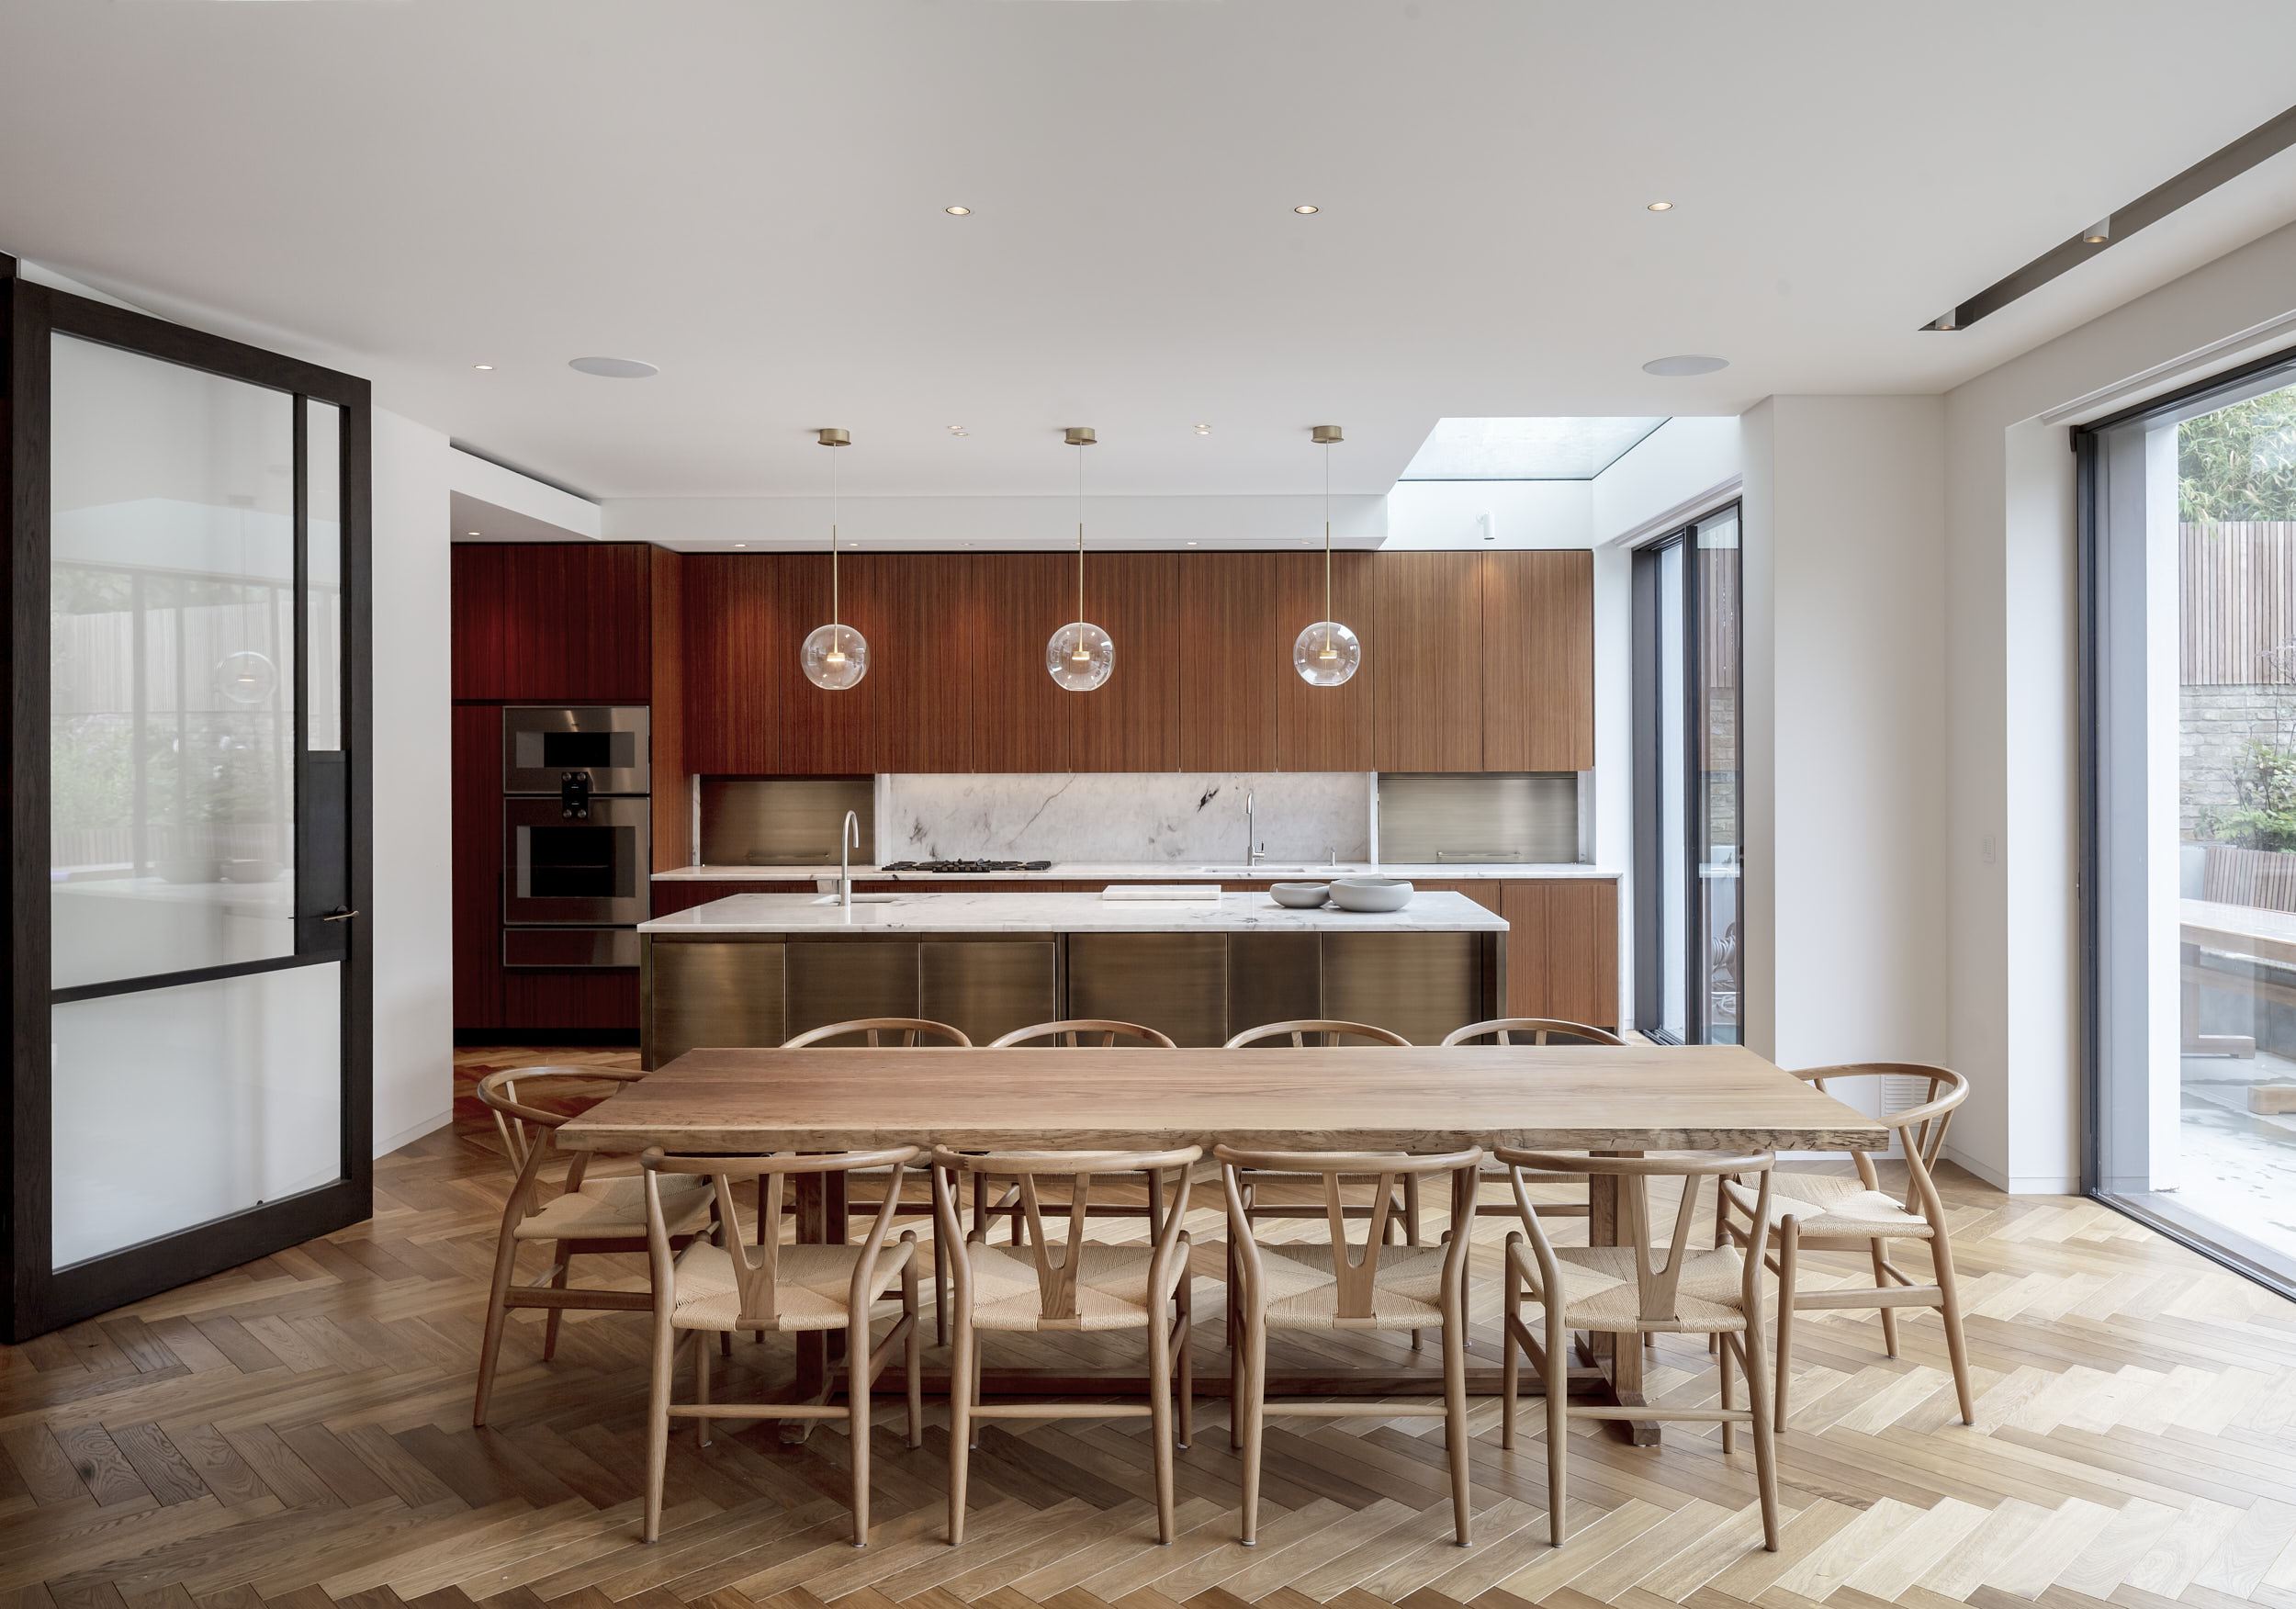 The stunning kitchen features bronze and veneer doors and classic modernist furniture.